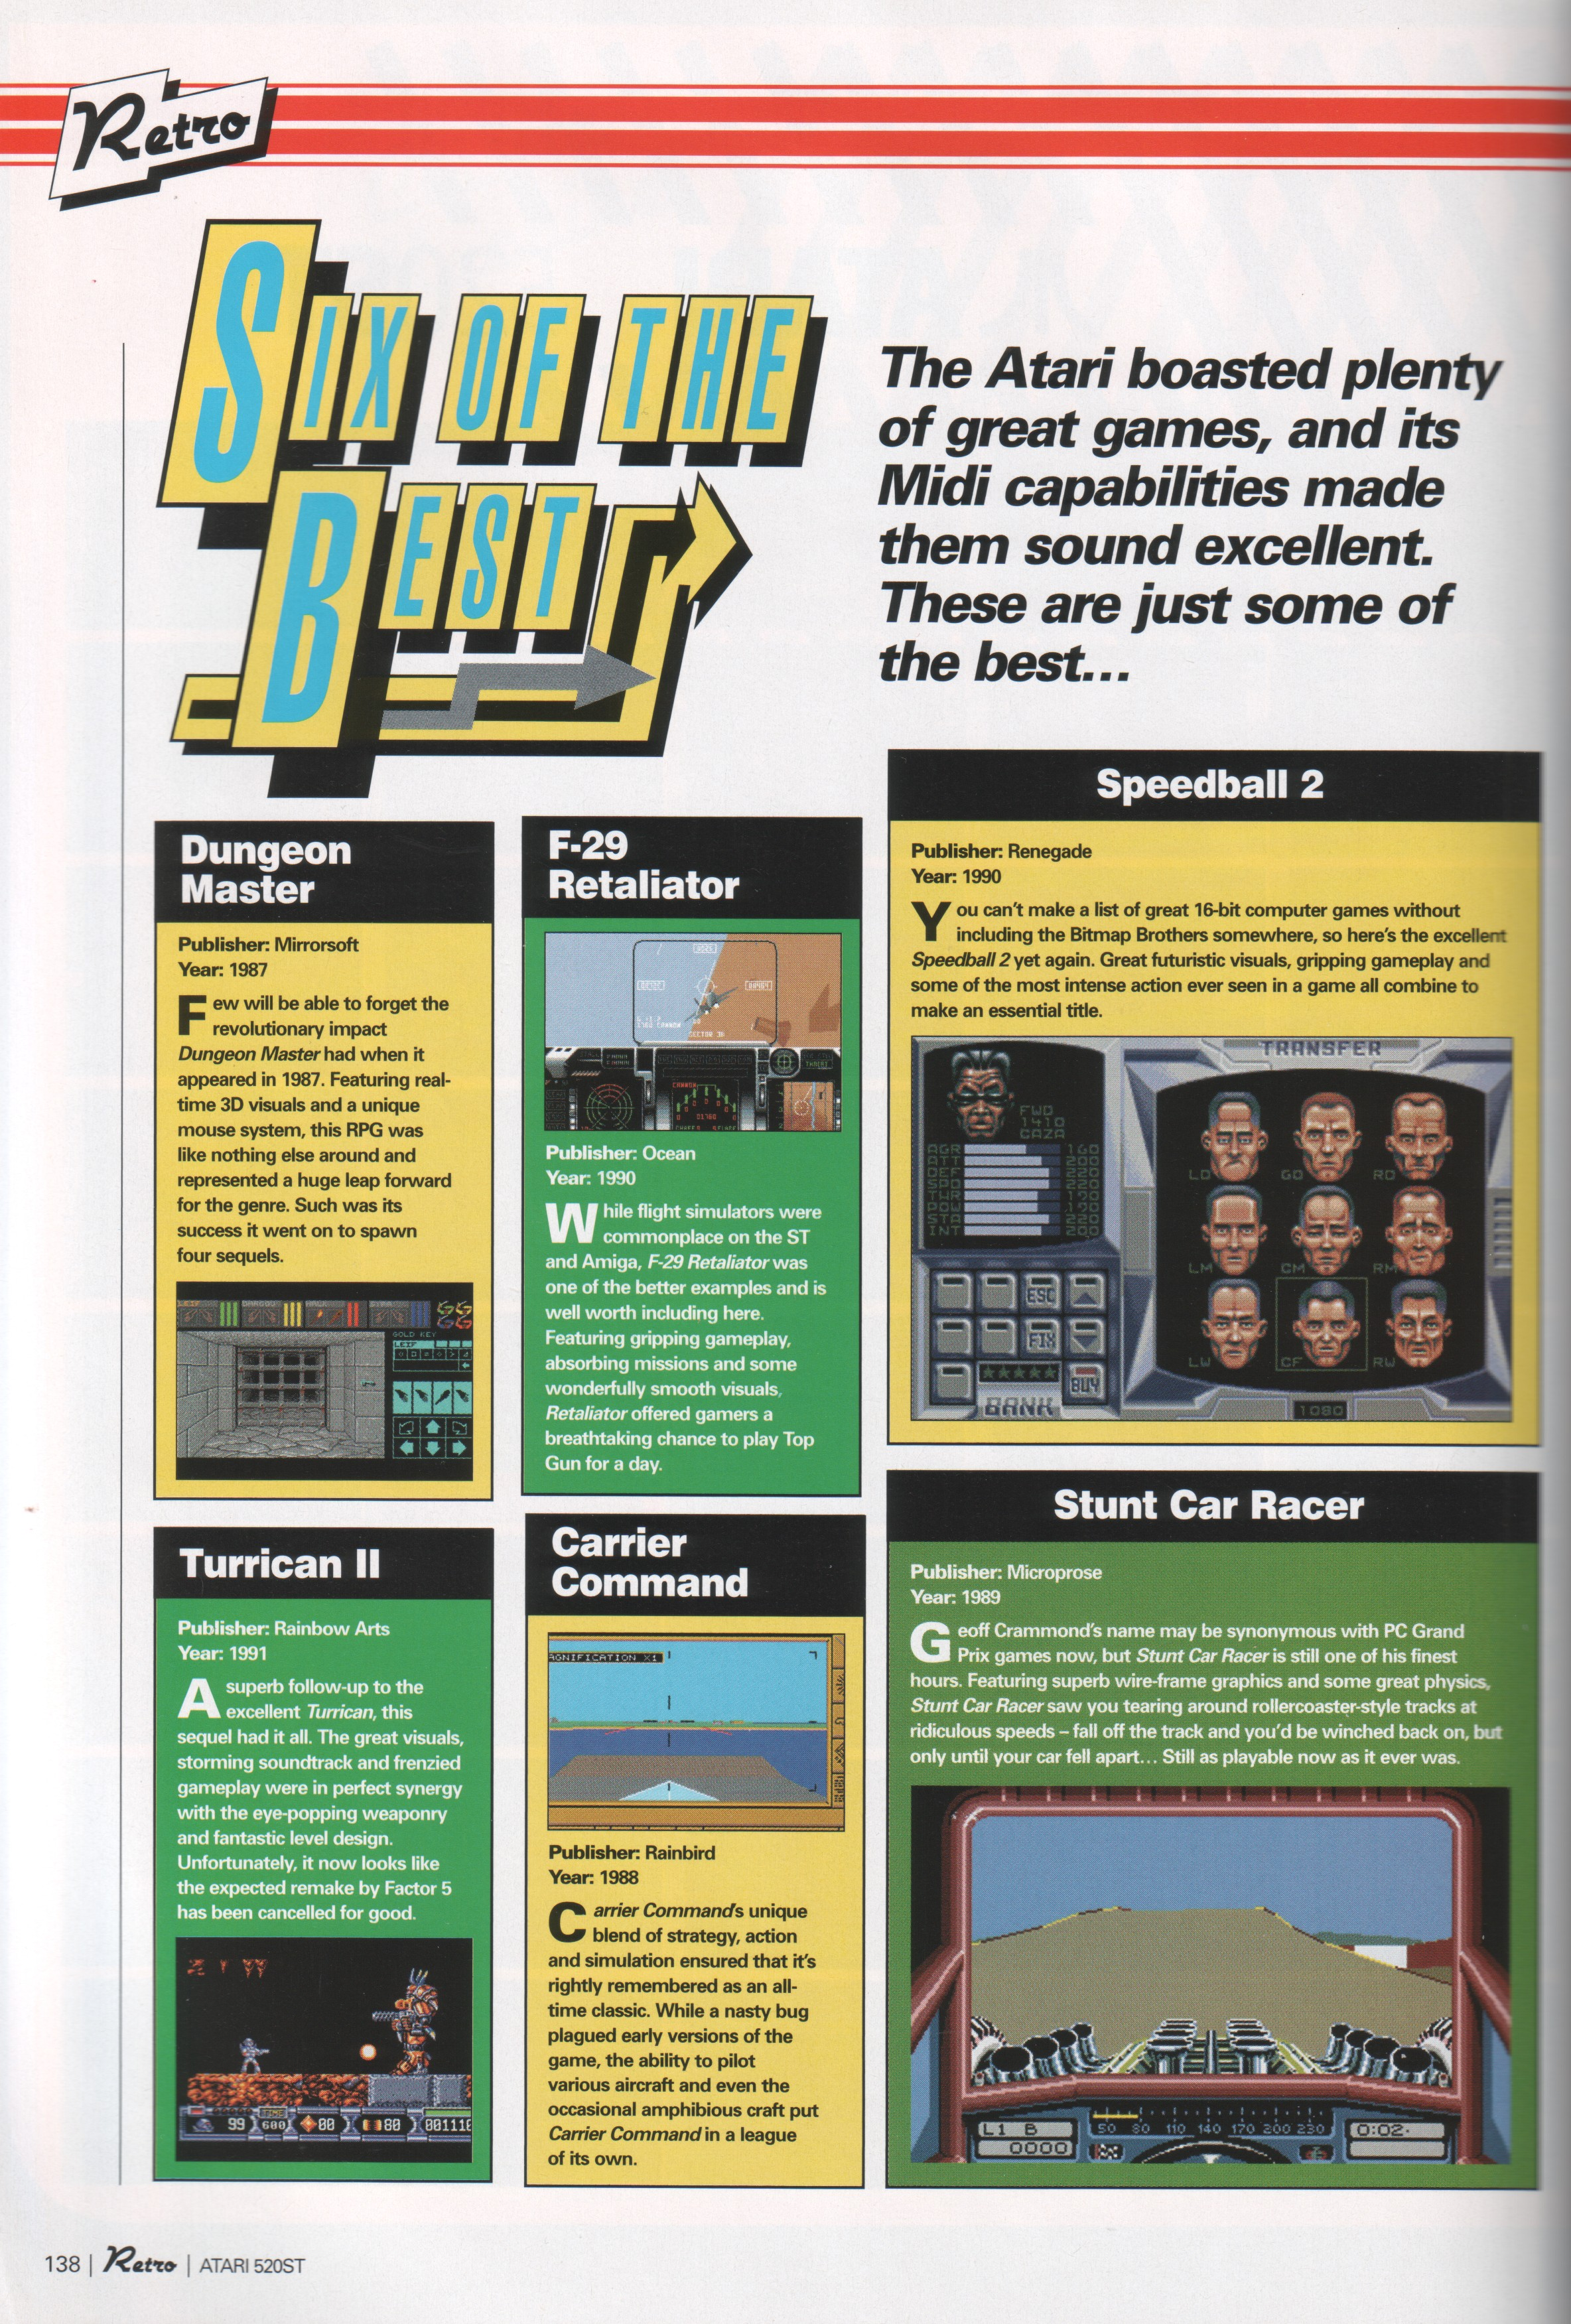 Dungeon Master Article published in British magazine 'Games TM Retro', Vol 1 December 2004, Page 138